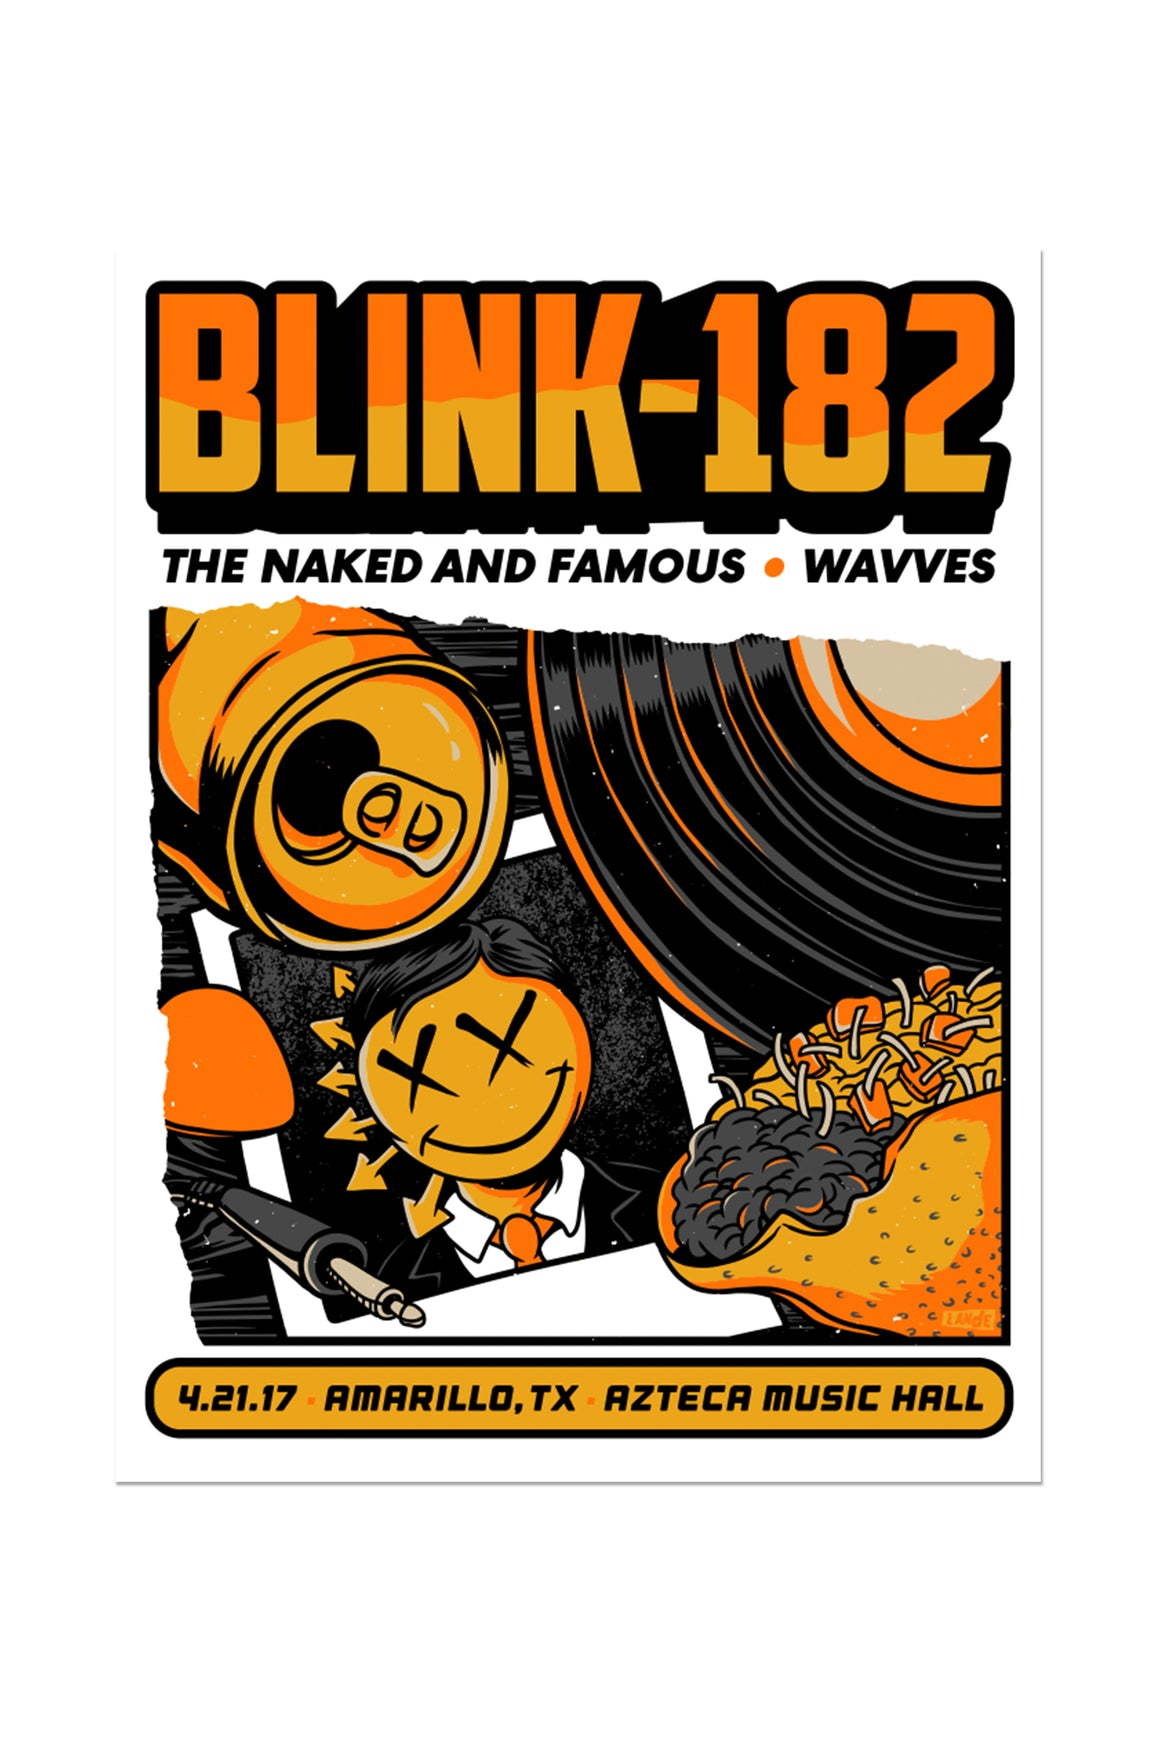 blink-182 4/21/2017 Amarillo, TX Event Poster